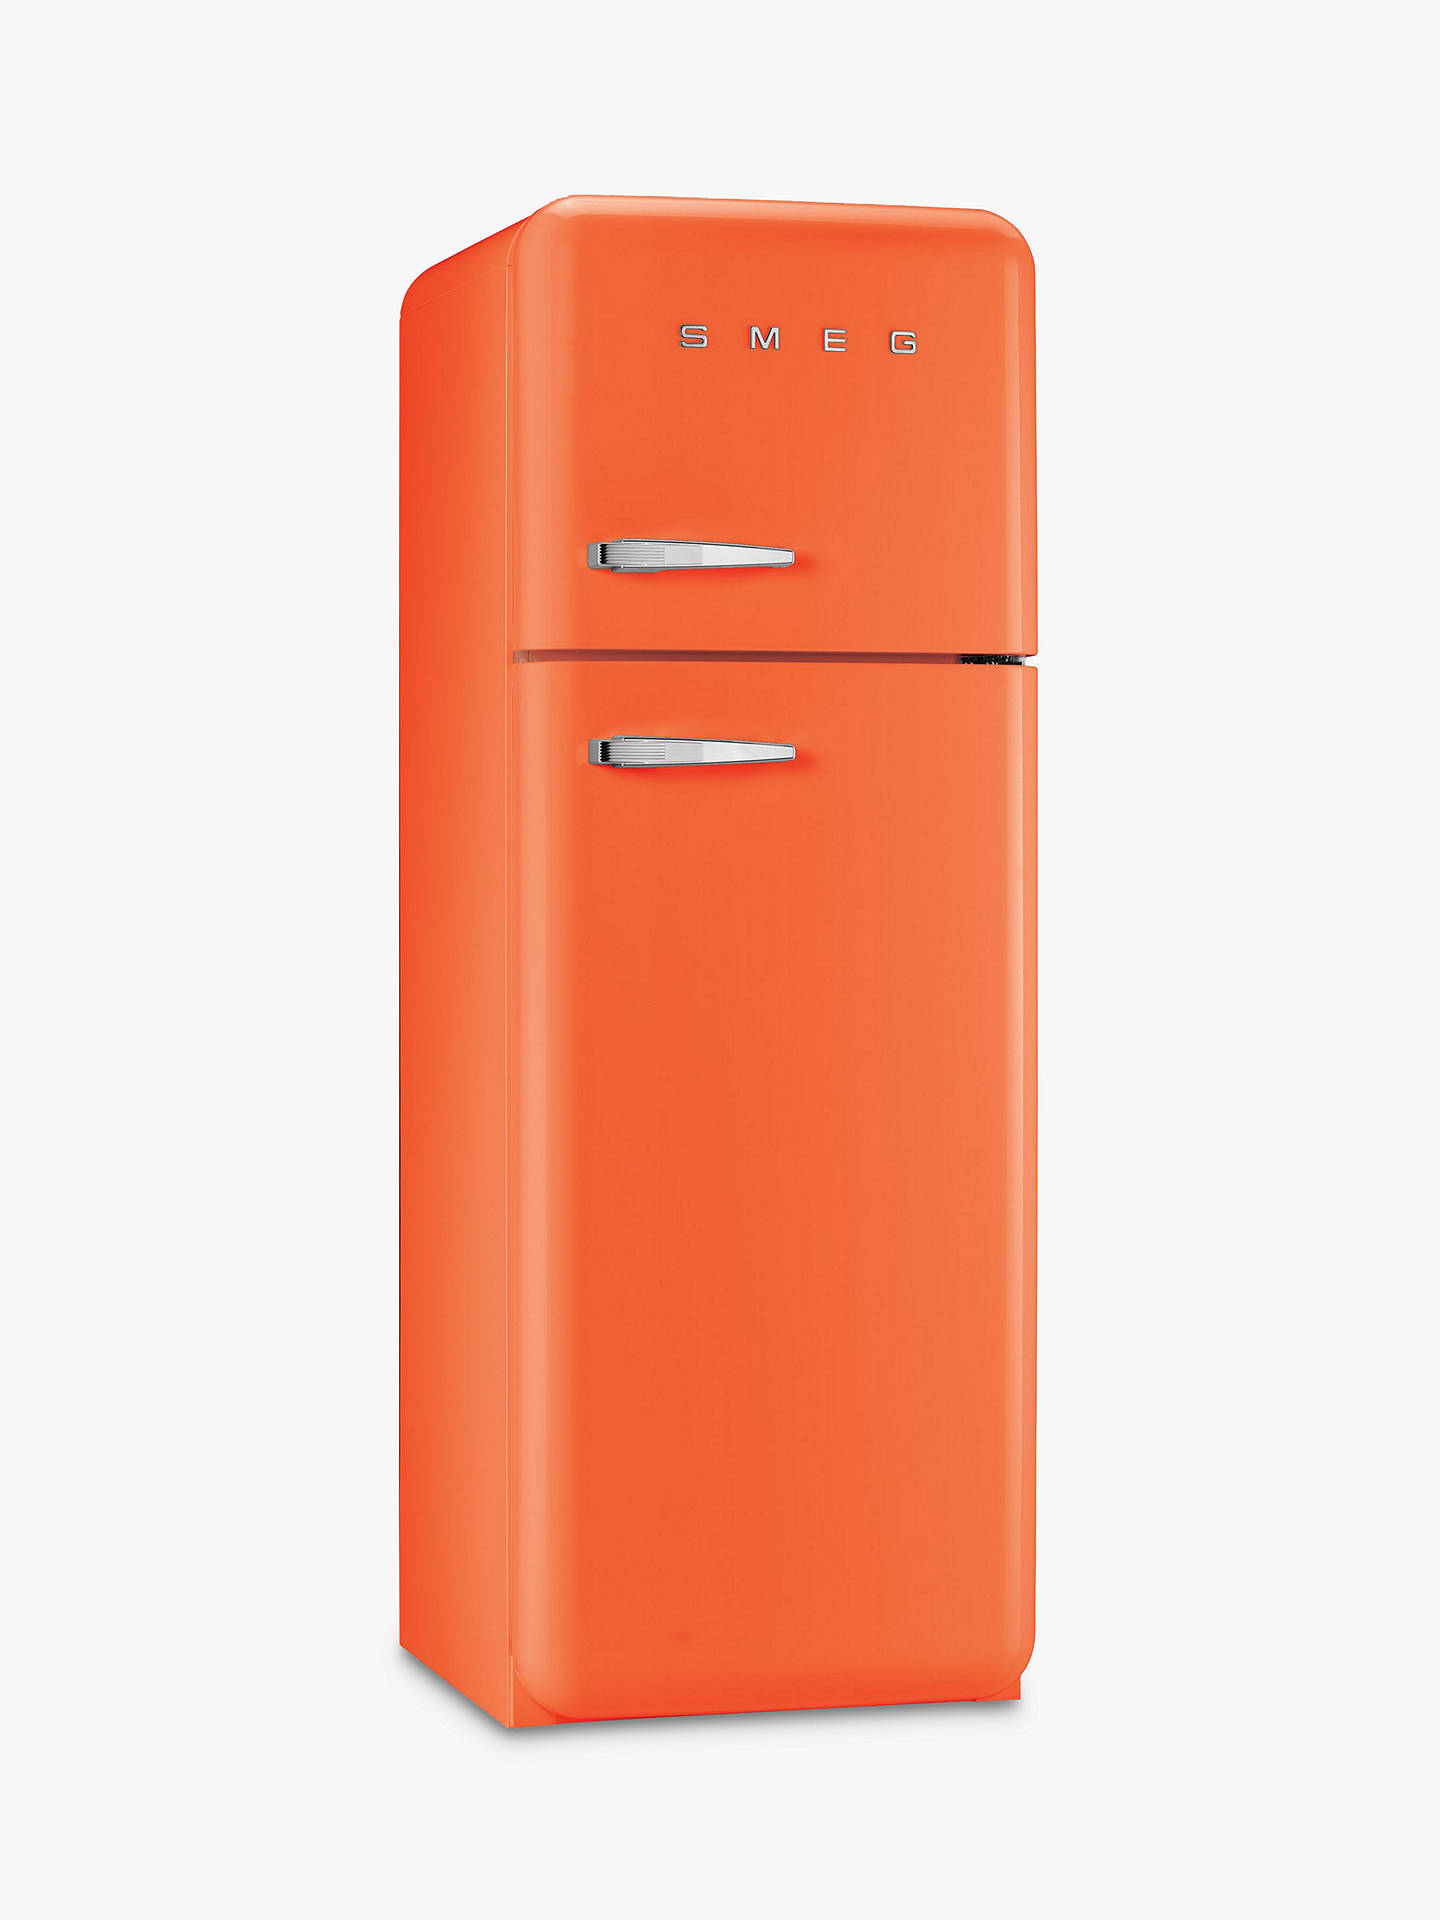 BuySmeg FAB30RF Fridge Freezer, A++ Energy Rating, 60cm Wide, Right-Hand Hinge, Orange Online at johnlewis.com